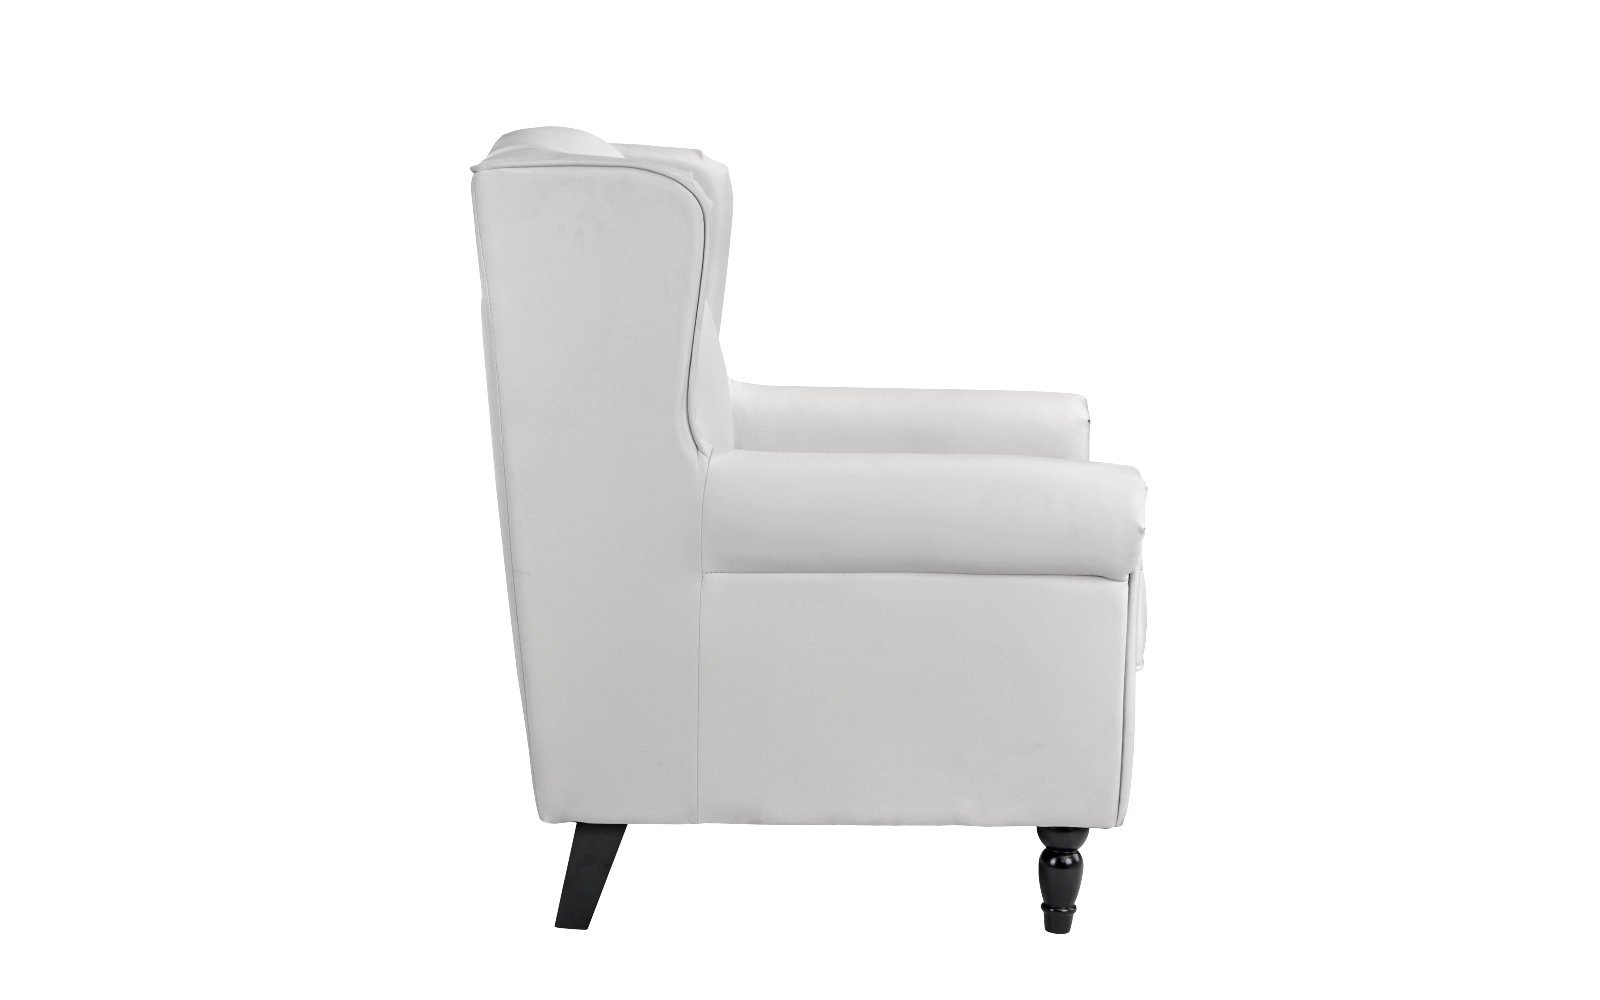 classic scroll arm faux leather accent chair living room armchair white 649862749582 ebay. Black Bedroom Furniture Sets. Home Design Ideas